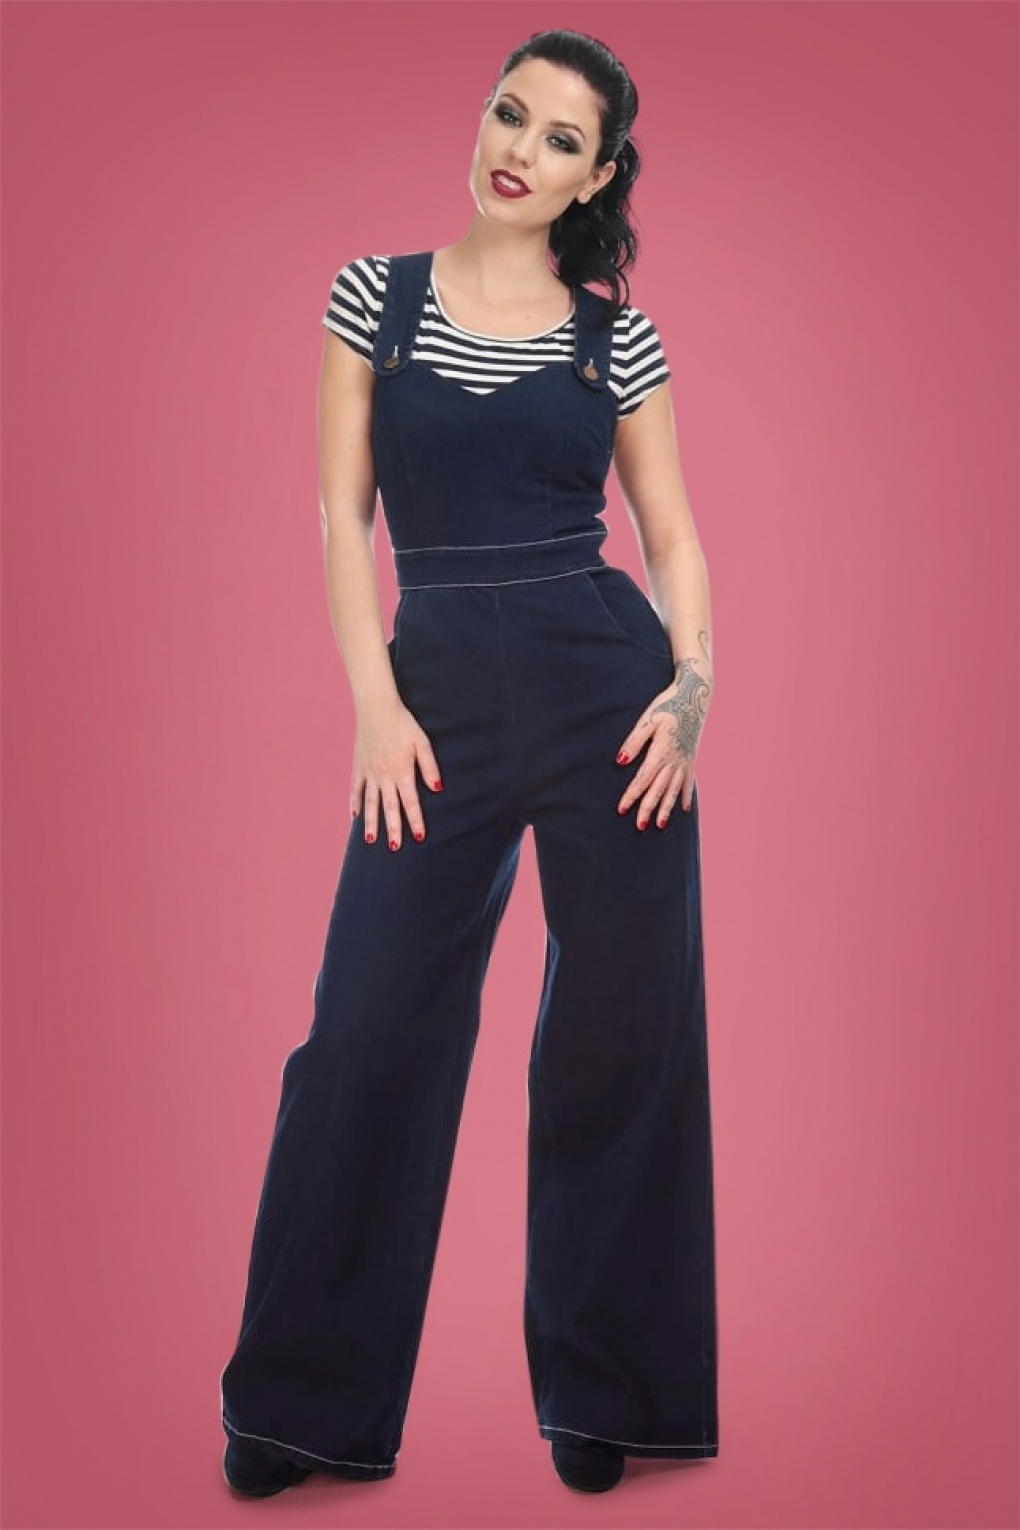 Vintage Overalls 1910s -1950s Pictures and History 50s Karla Heart Dungarees in Navy £71.62 AT vintagedancer.com